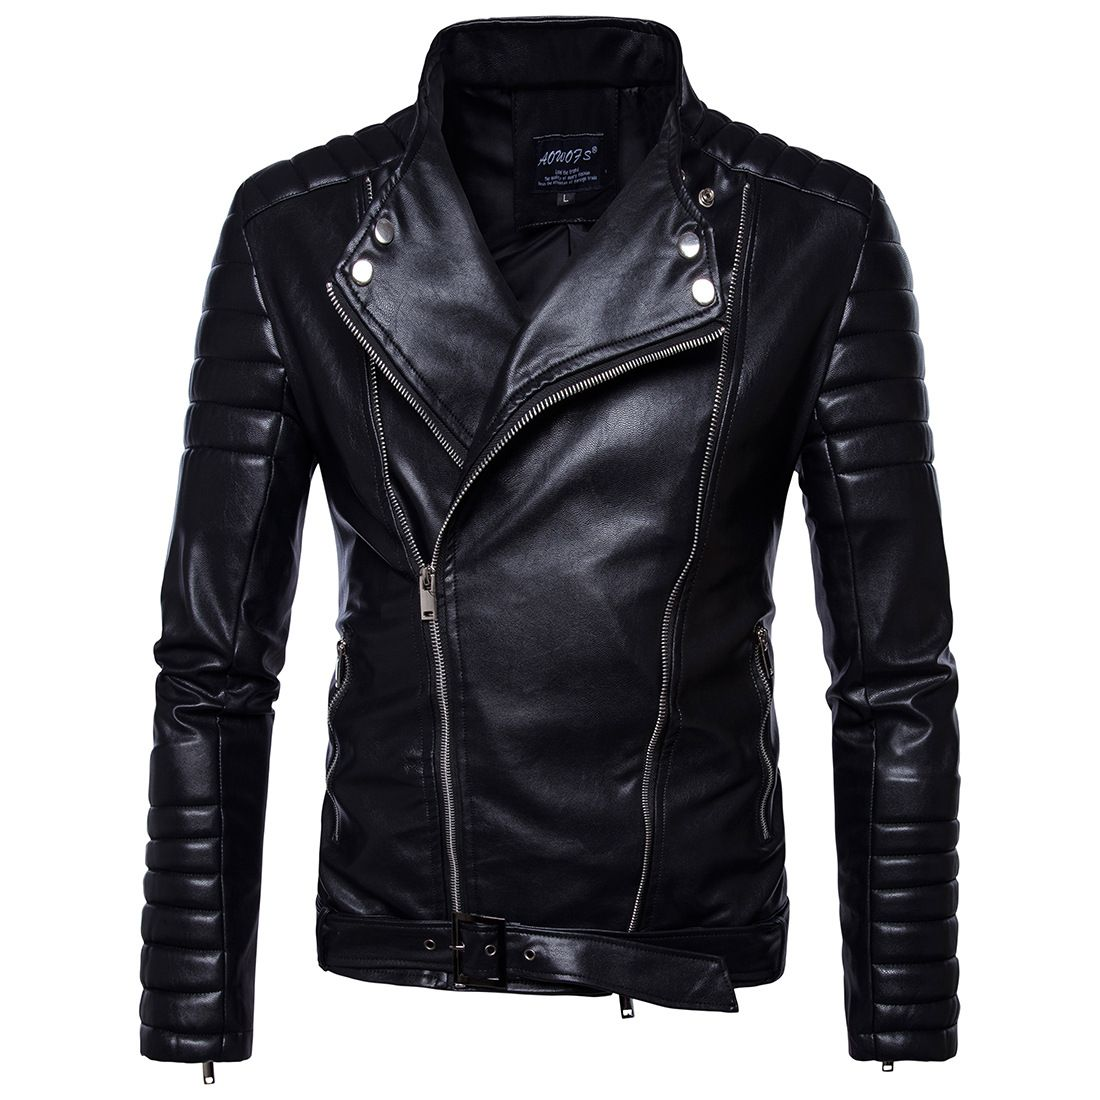 Vintage Jackets Mens Classic Retro Jacket Turn Down Collar Slim Faux Leather Biker Jacket Motorcycle Clothing